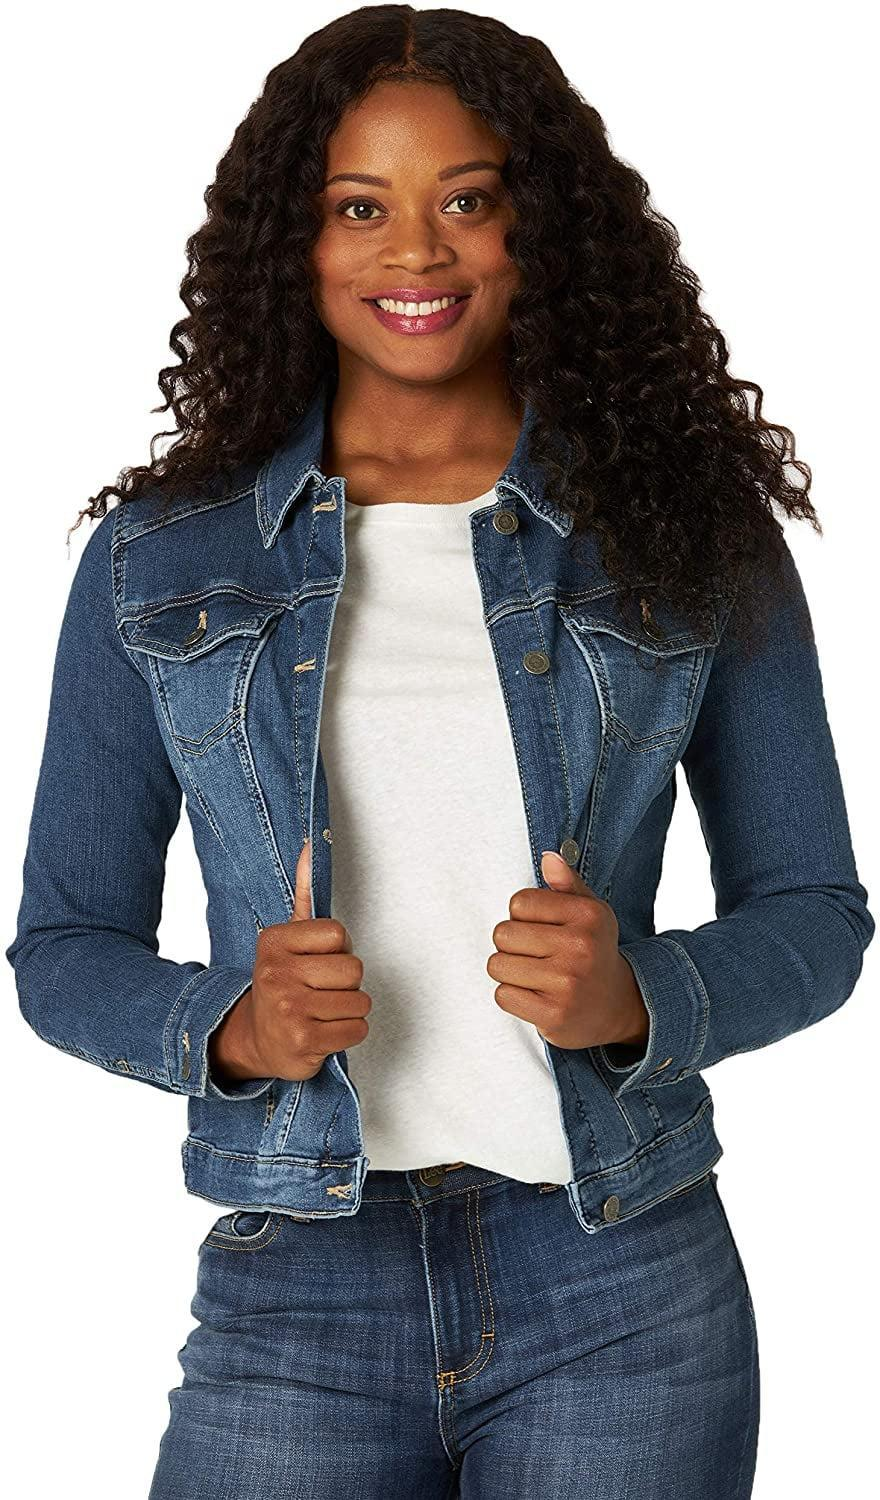 <p>The <span>Riders by Lee Indigo Women's Denim Jacket</span> ($35) comes in a variety of washes and shades so you can look your best all spring long.</p>